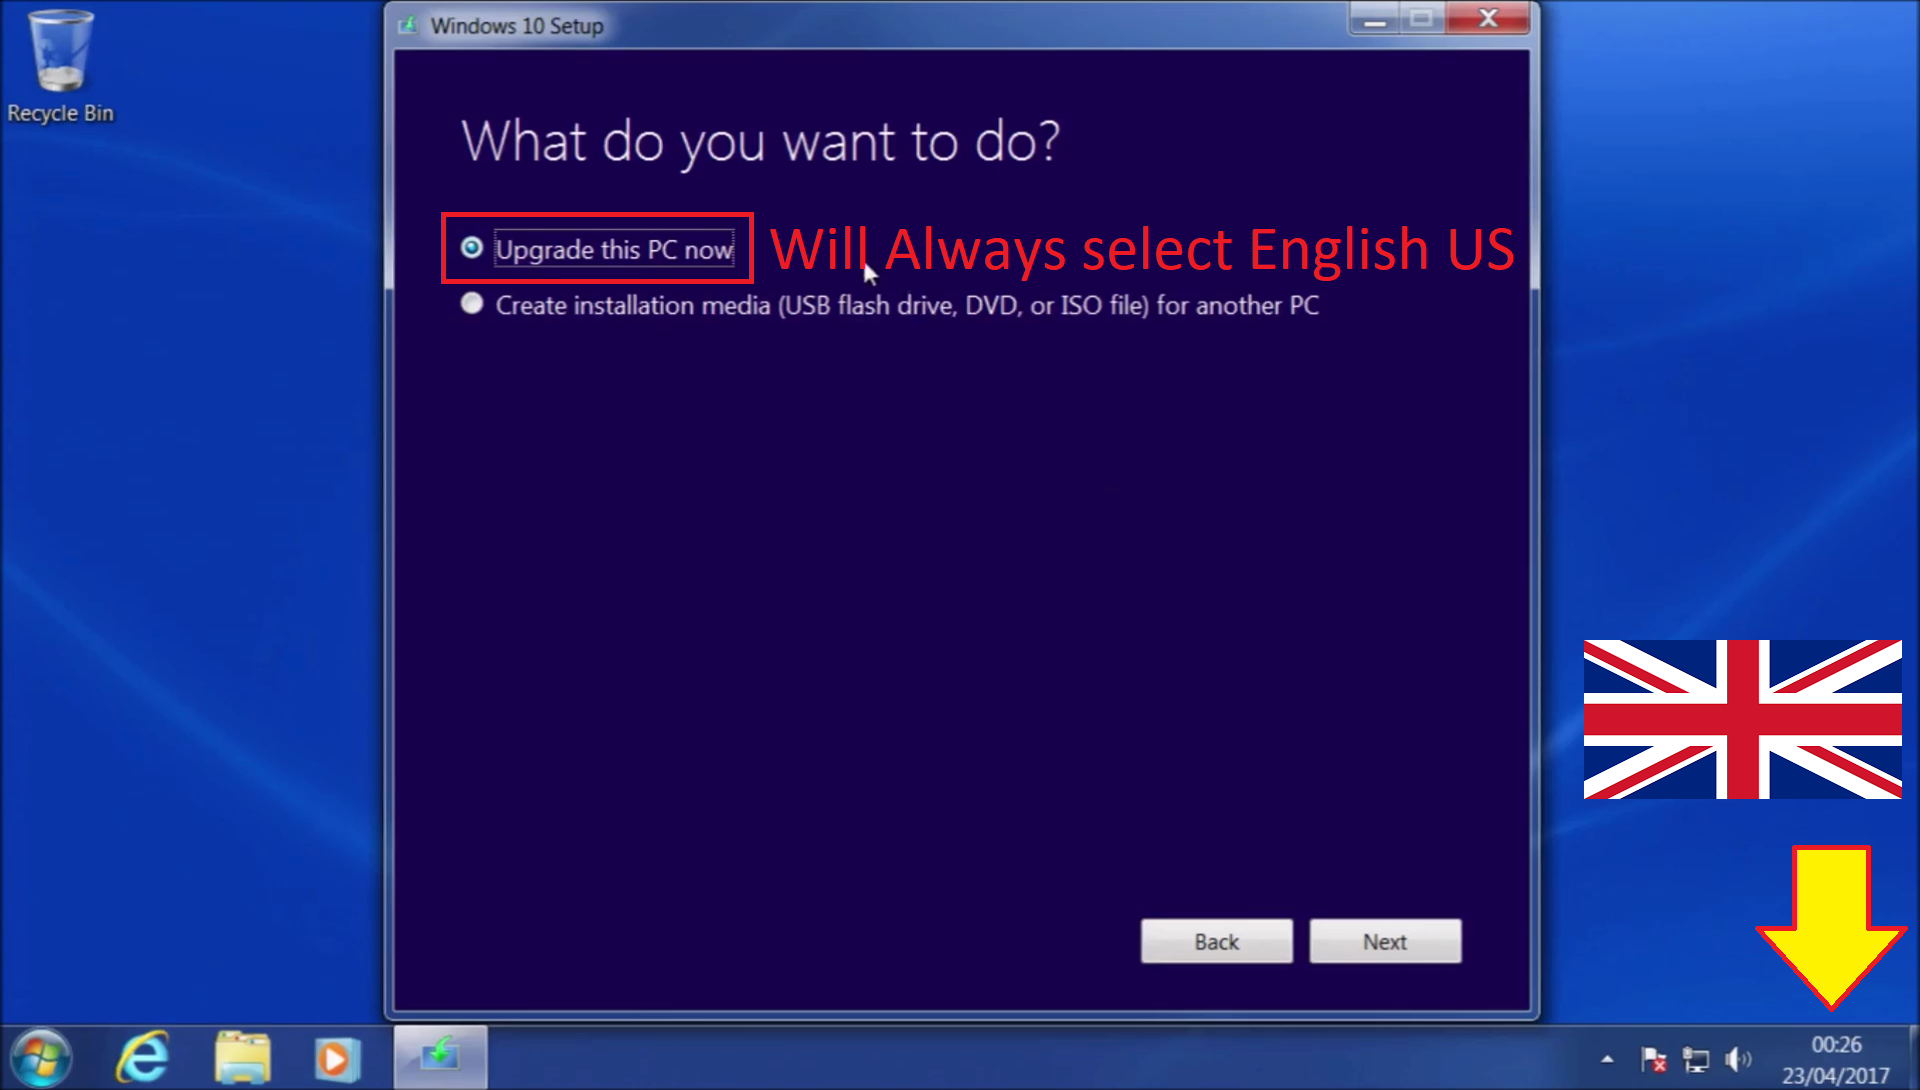 The Initial upgrade from Windows 7 or Windows 8 1 to Windows